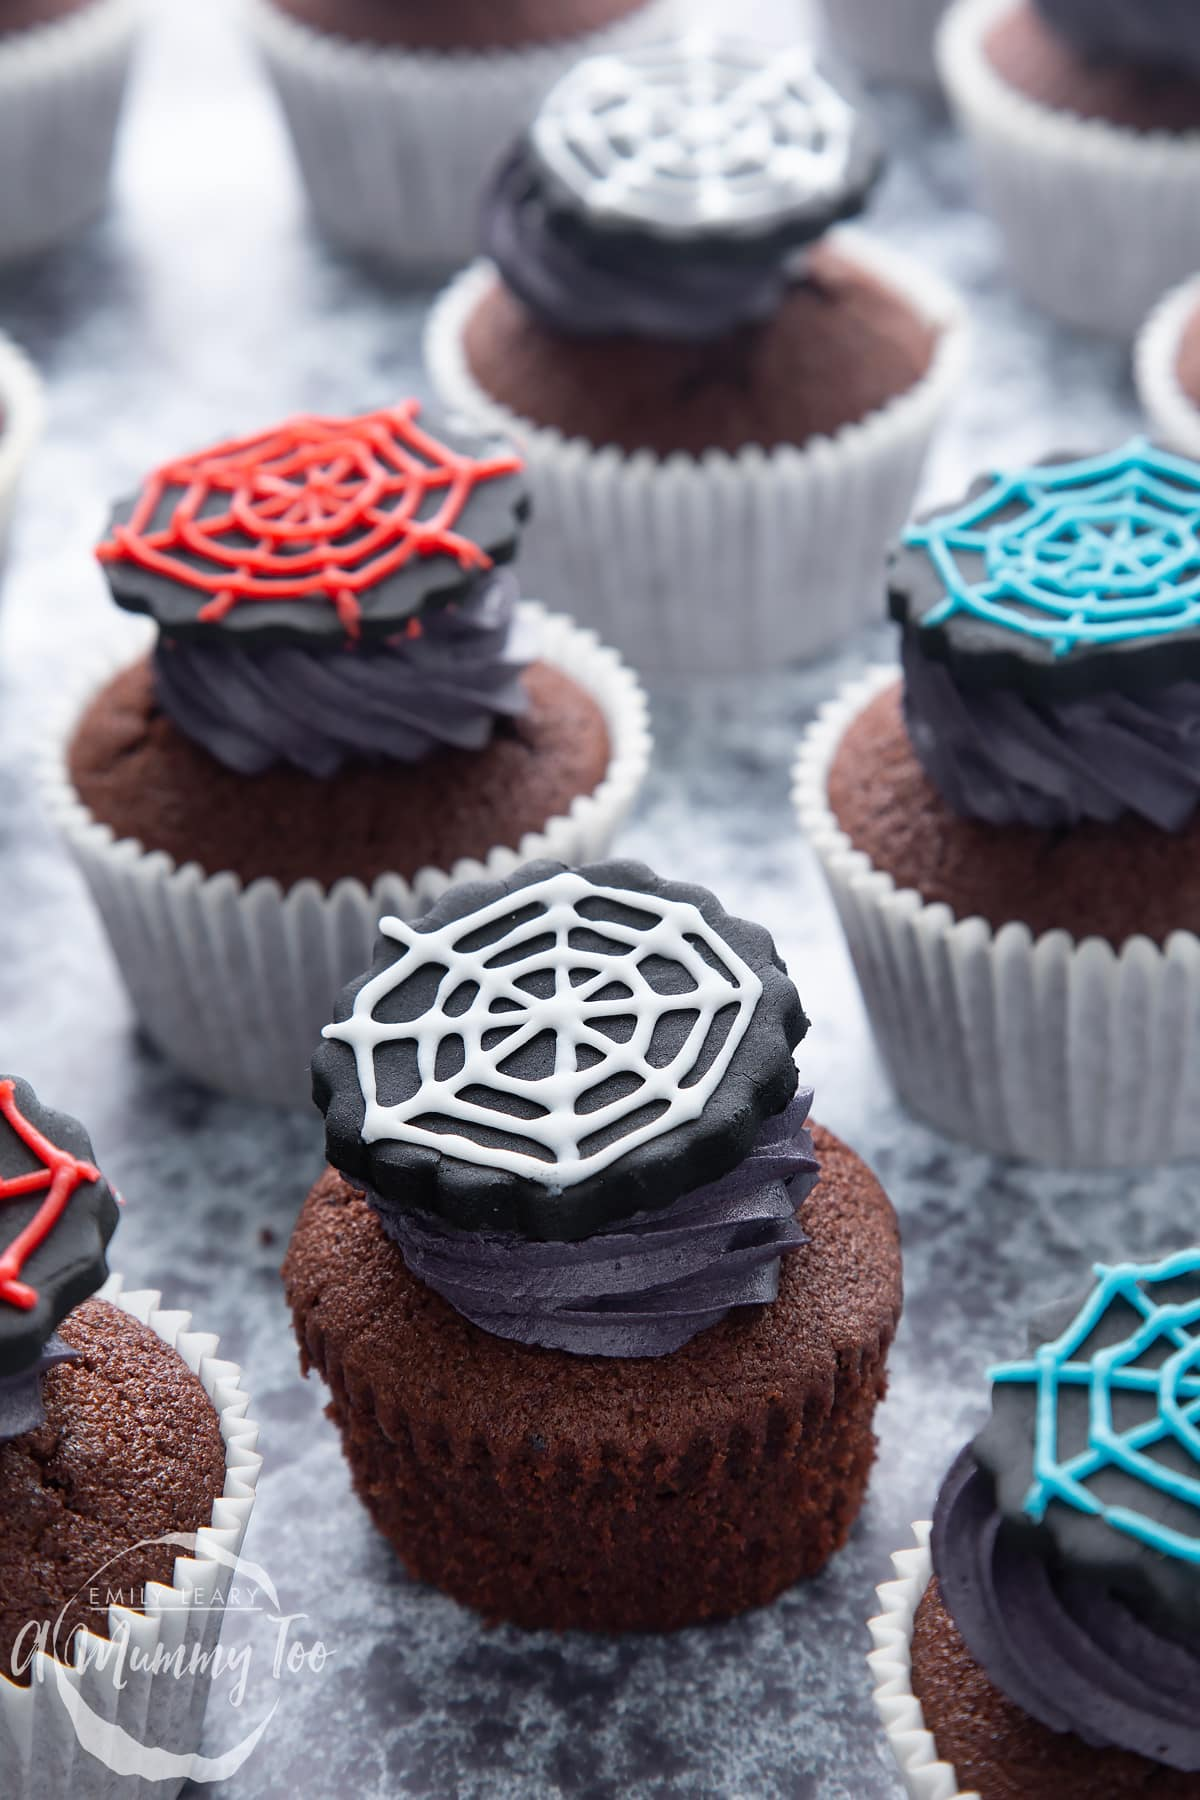 Spider web cupcakes arranged on a black surface. The chocolate sponge cupcakes are topped with purple vanilla buttercream and discs of black sugar paste decorated with spider web icing.